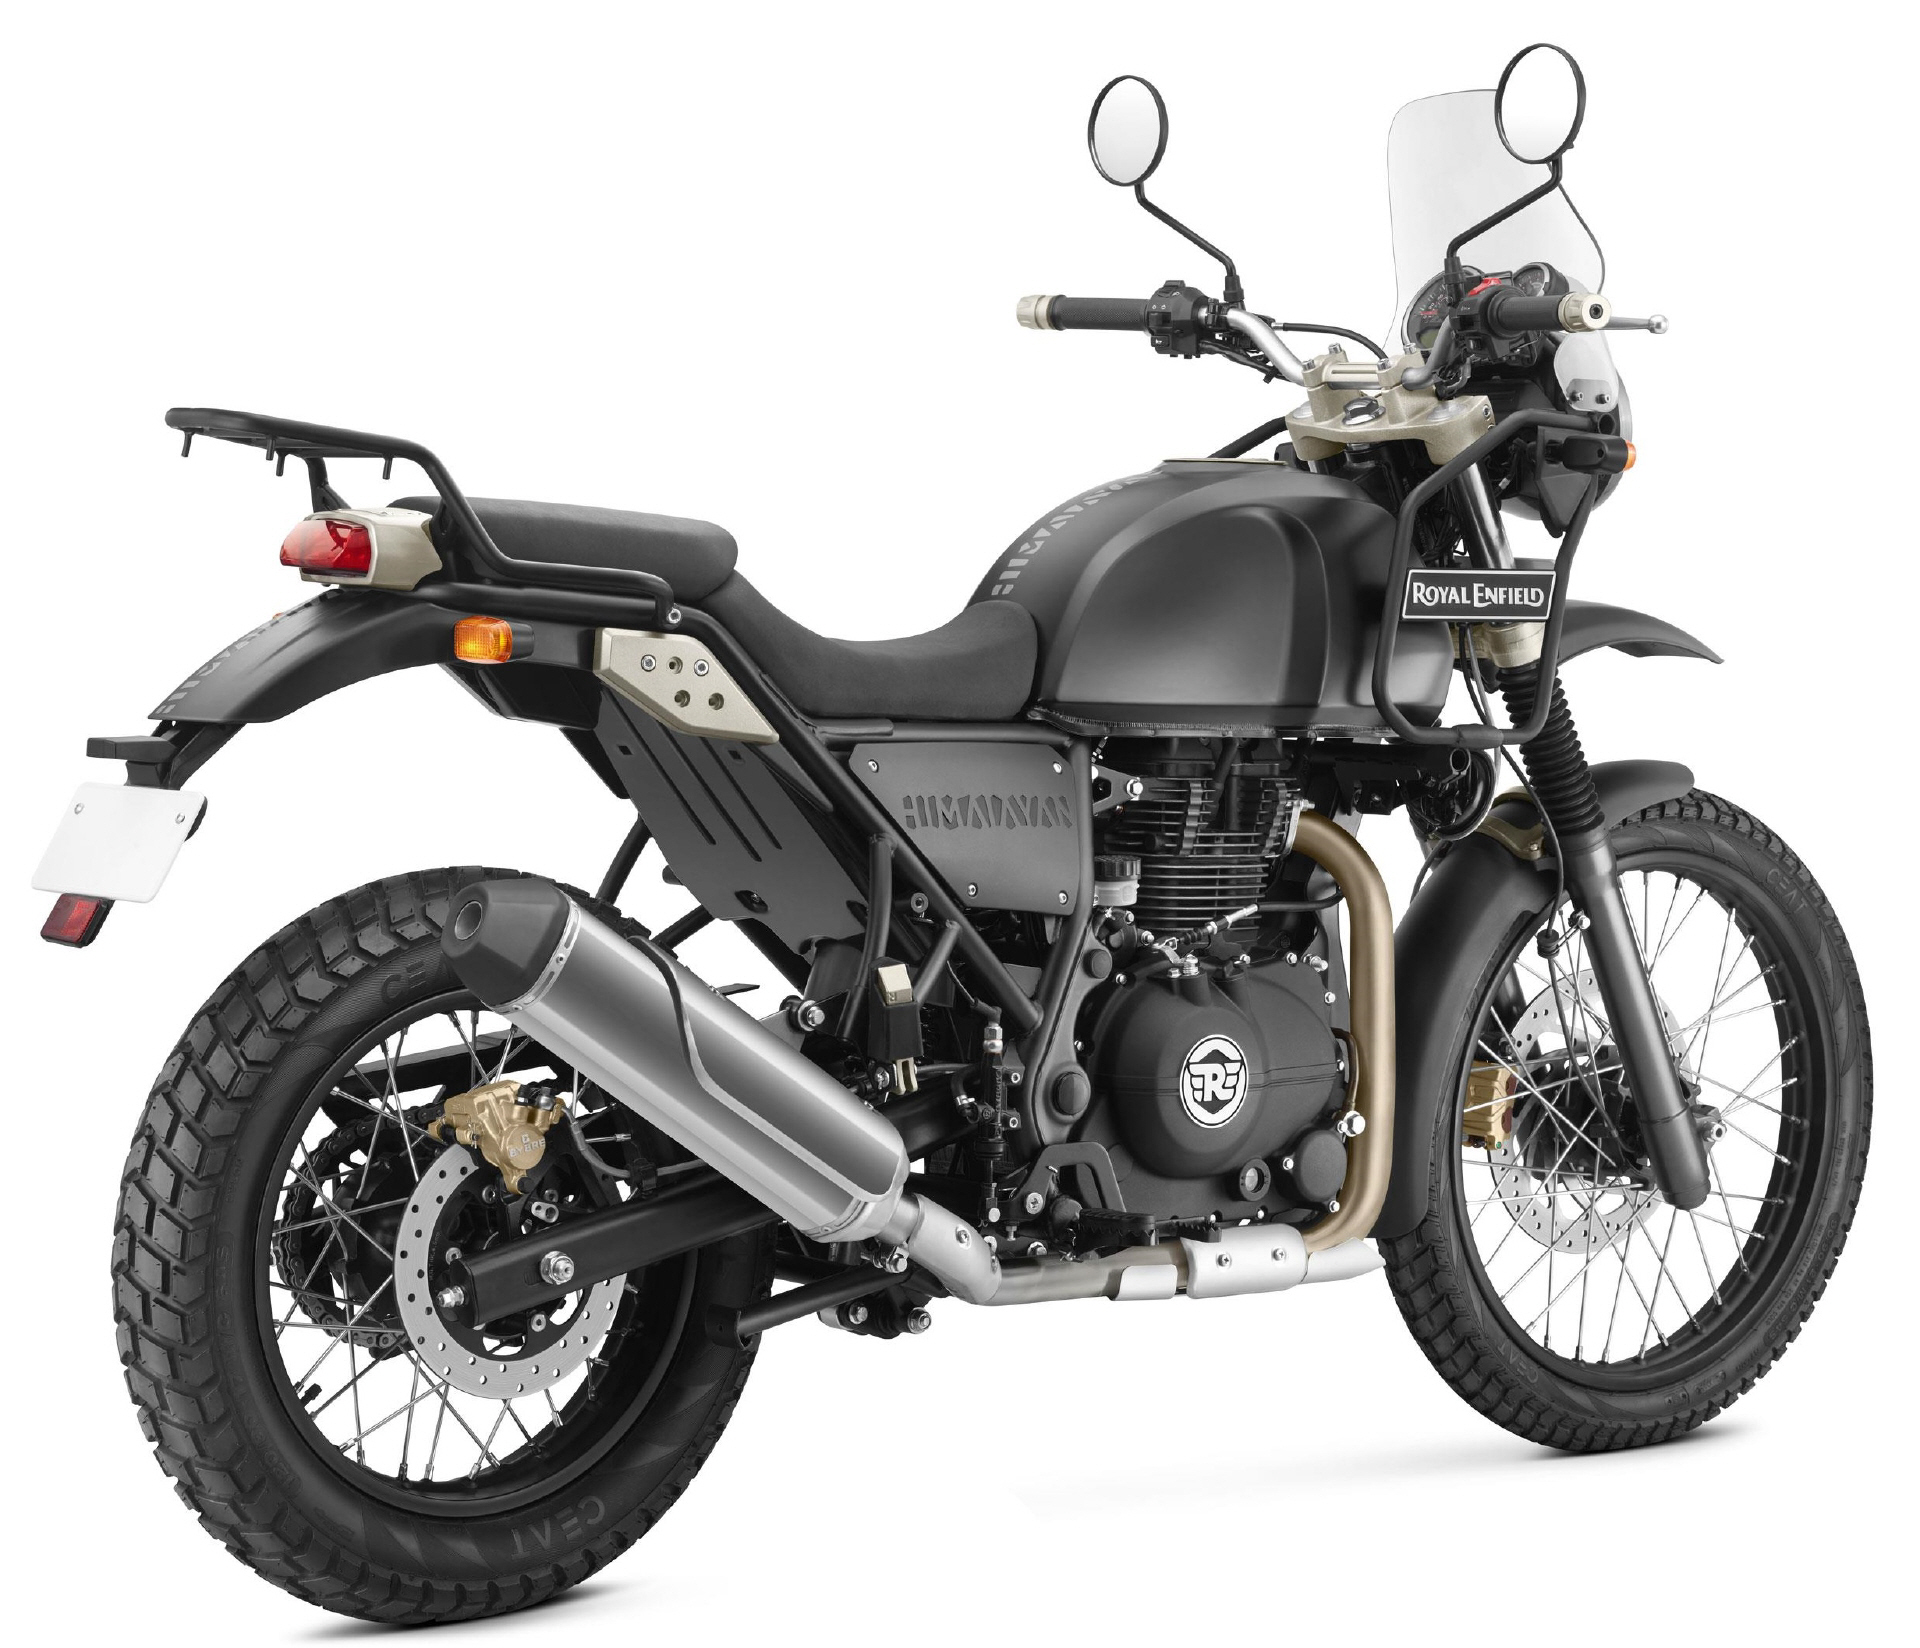 royalenfield_himalayan_02jpg